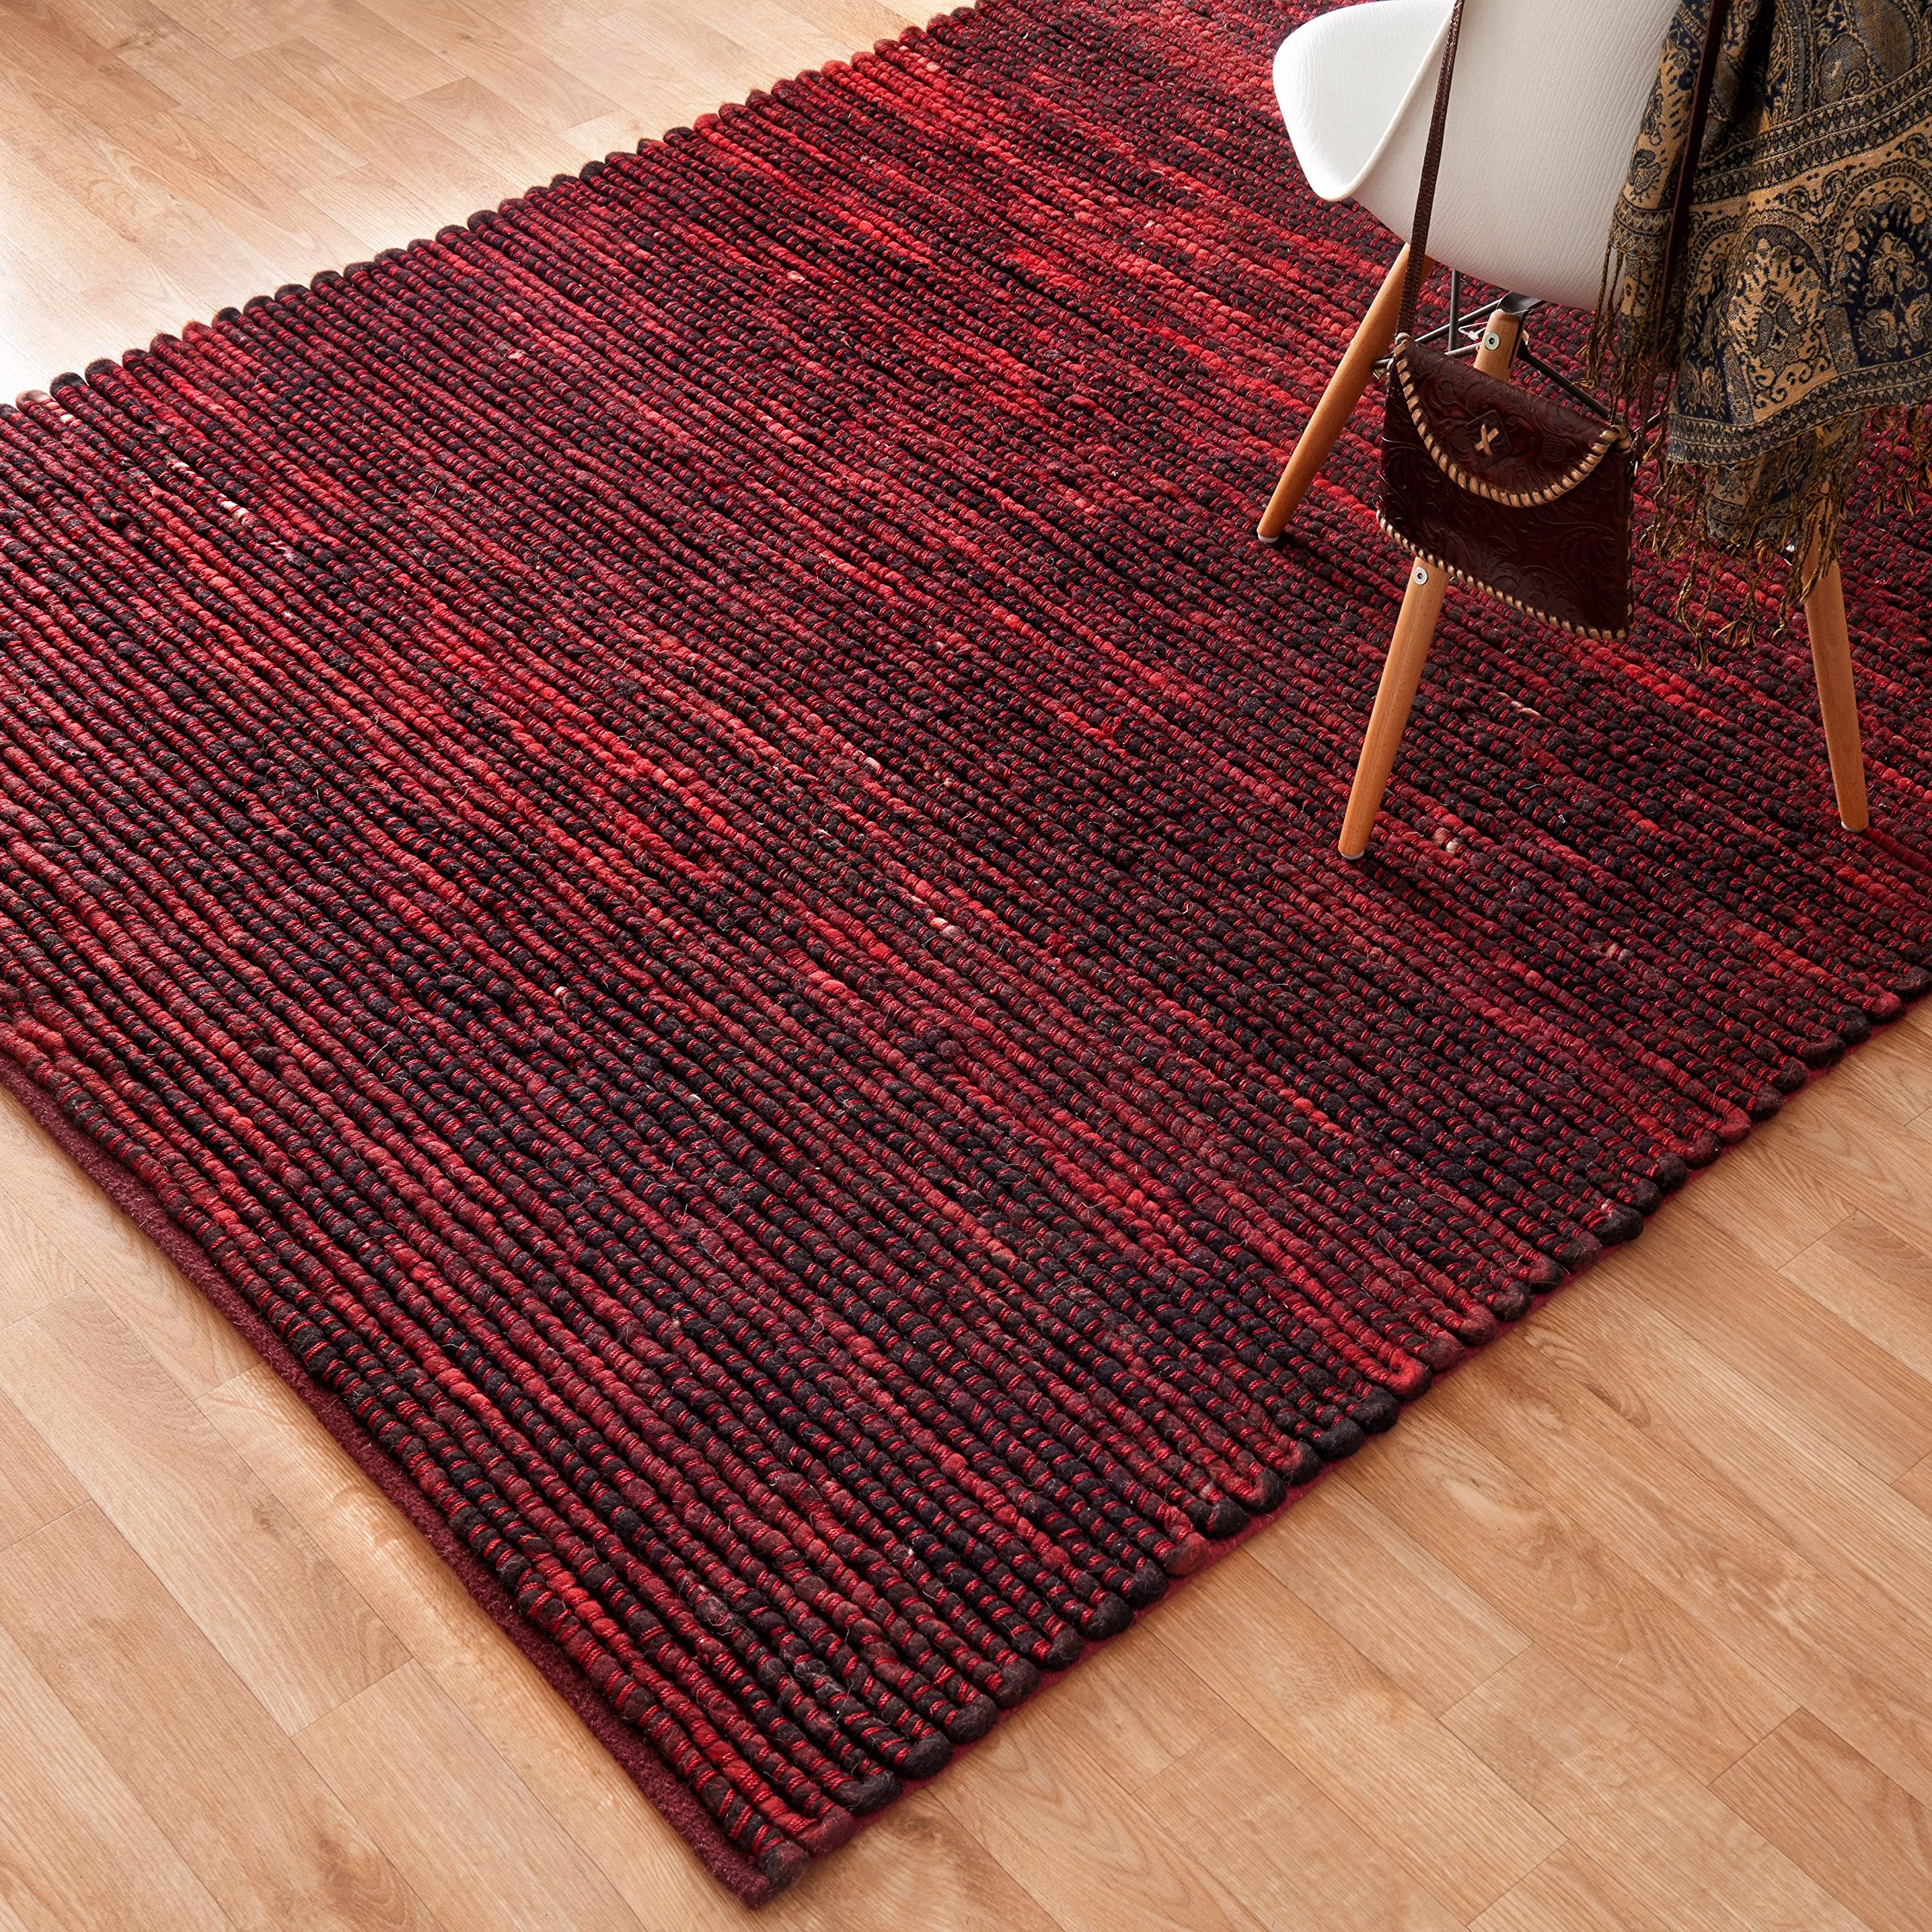 Alexander Home Hand-woven Thais Poinsettia Felted Wool Rug (5' x 7'6) by Alexander Home